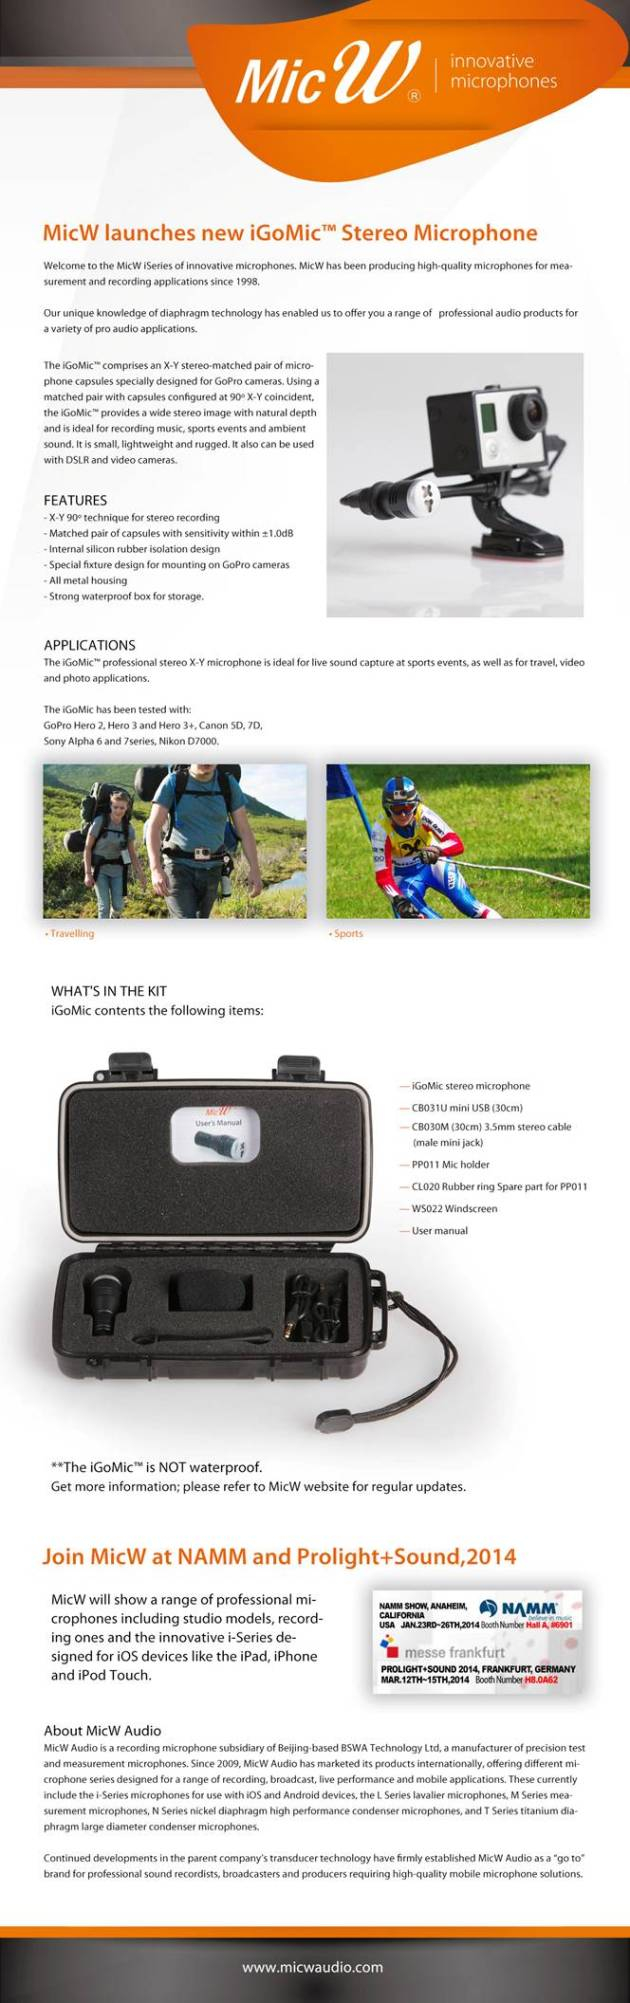 MicW launch to iGoMic specially designed for GoPro Cameras